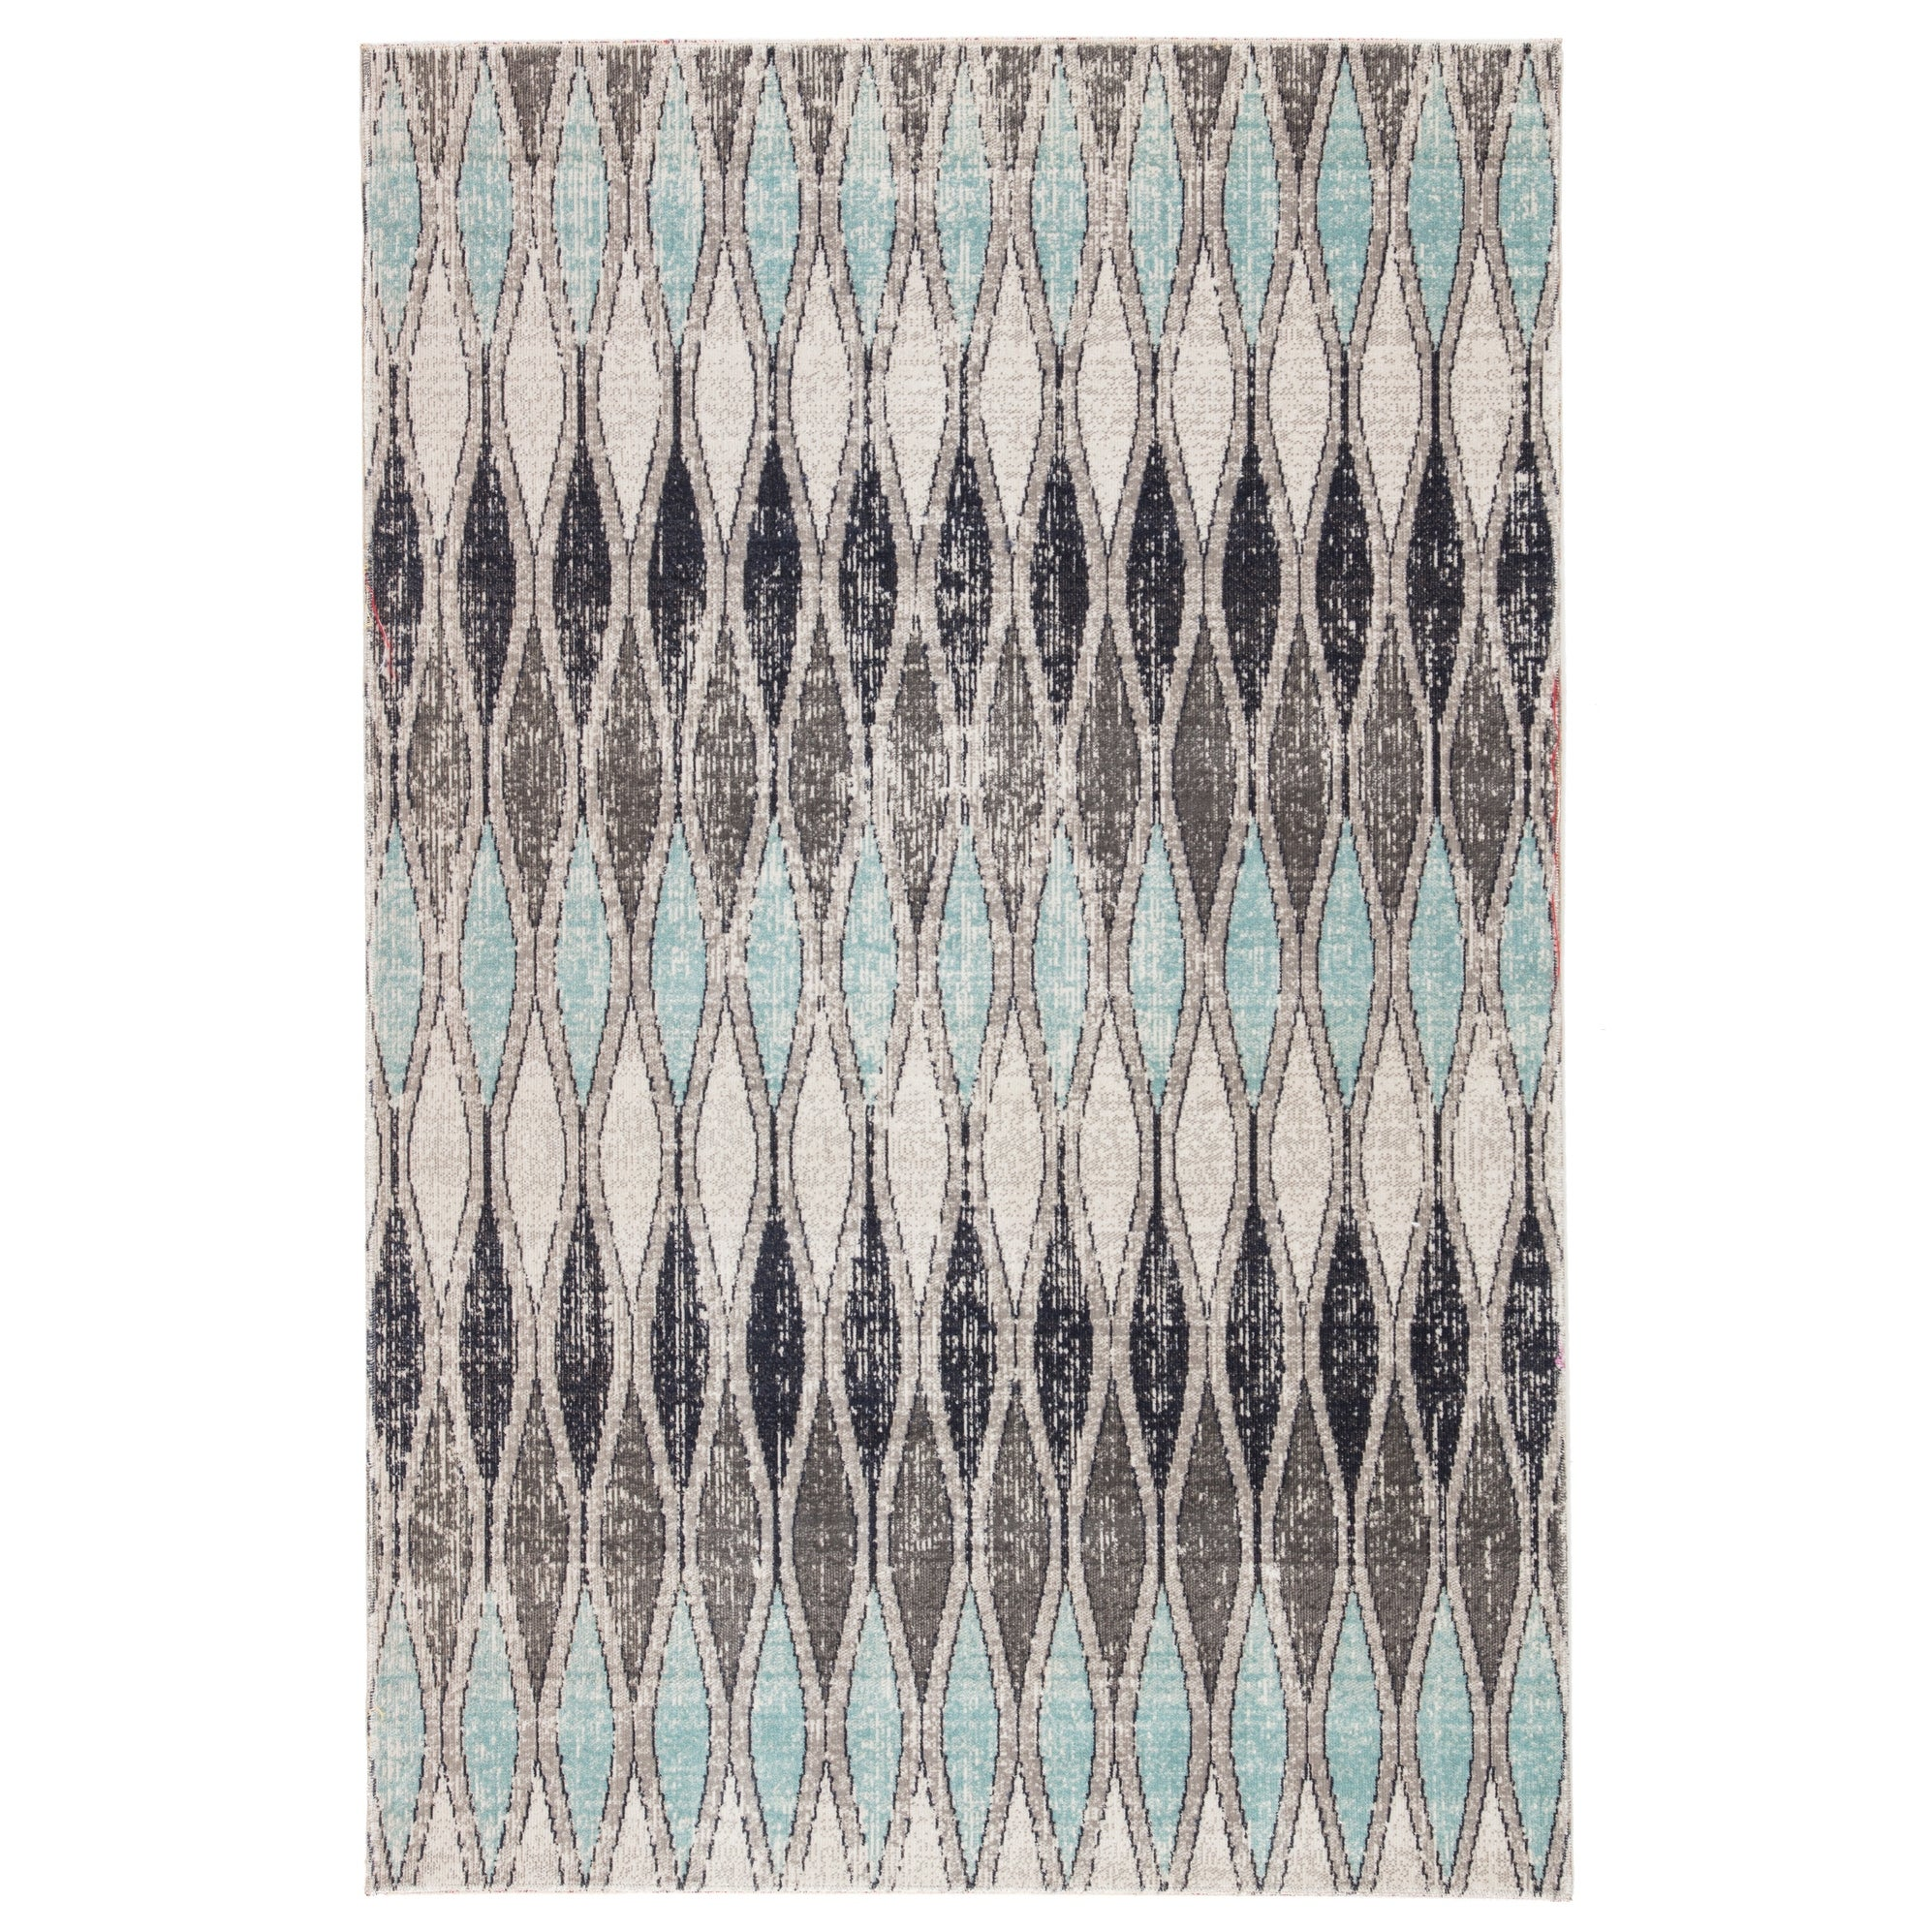 Hertford Grey Blue Indoor Outdoor Geometric Rug Overstock 27415295